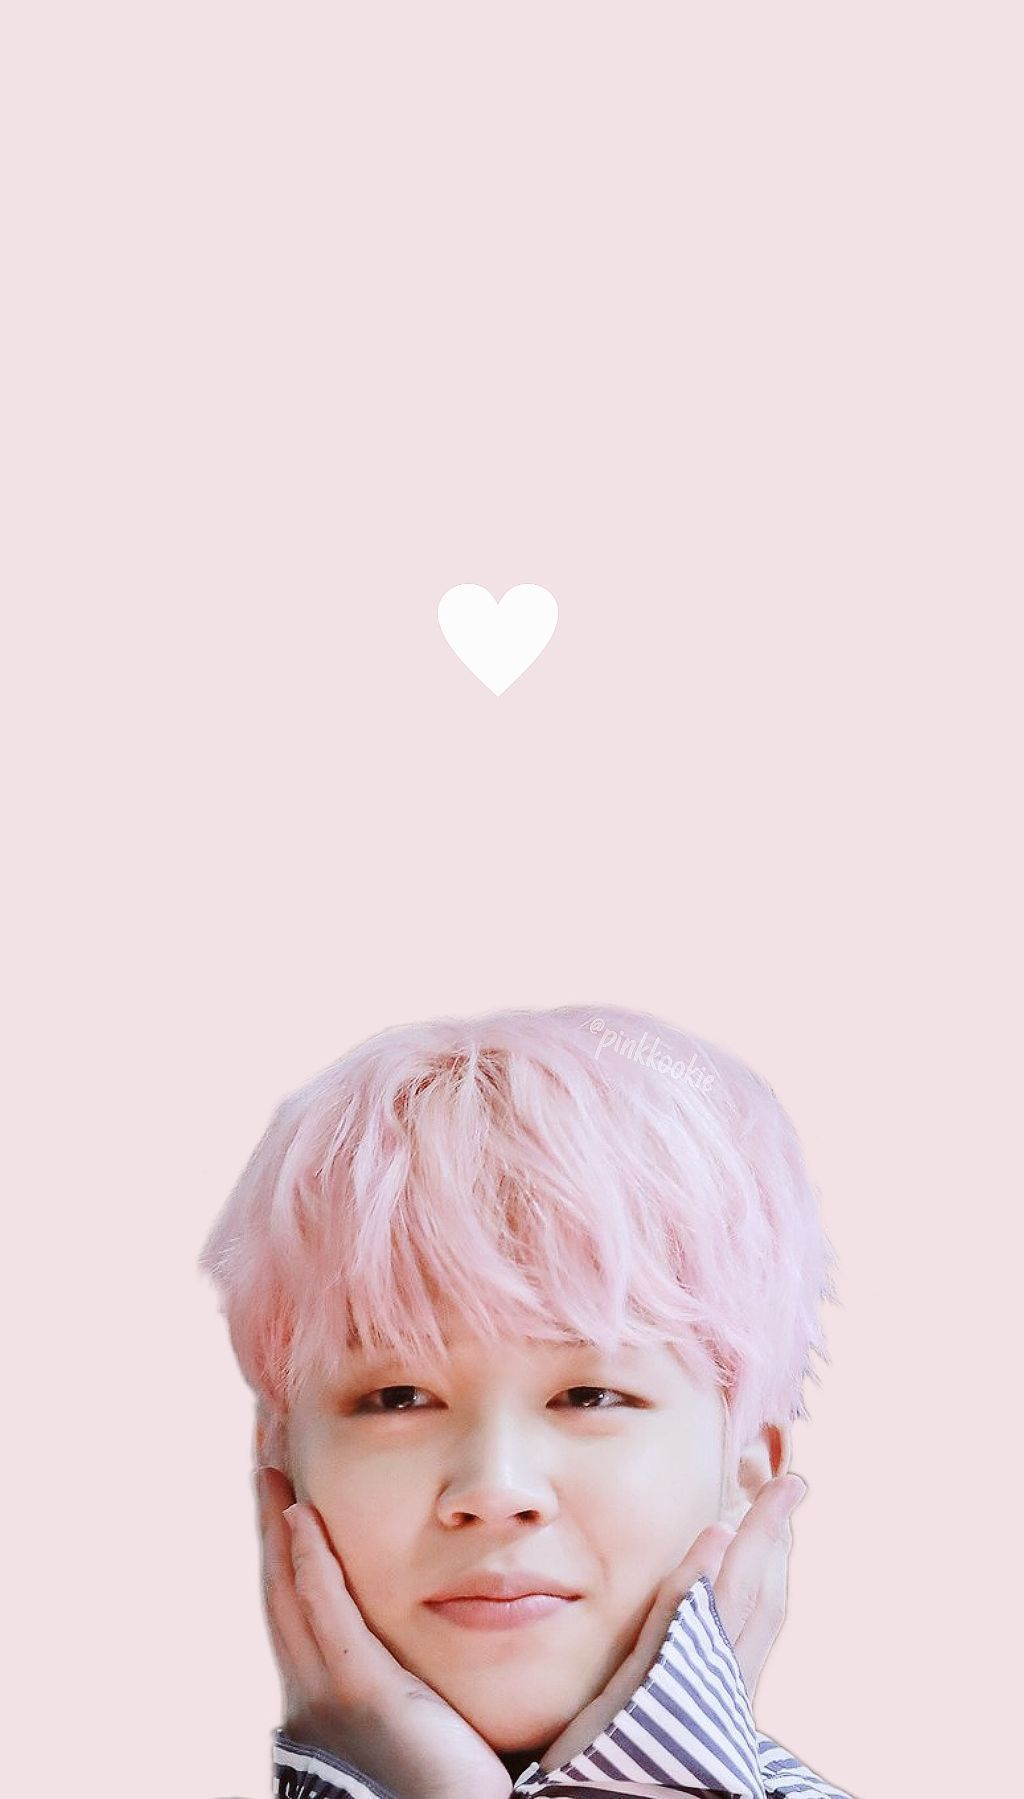 Bts Jimin Cute Wallpapers Top Free Bts Jimin Cute Backgrounds Wallpaperaccess